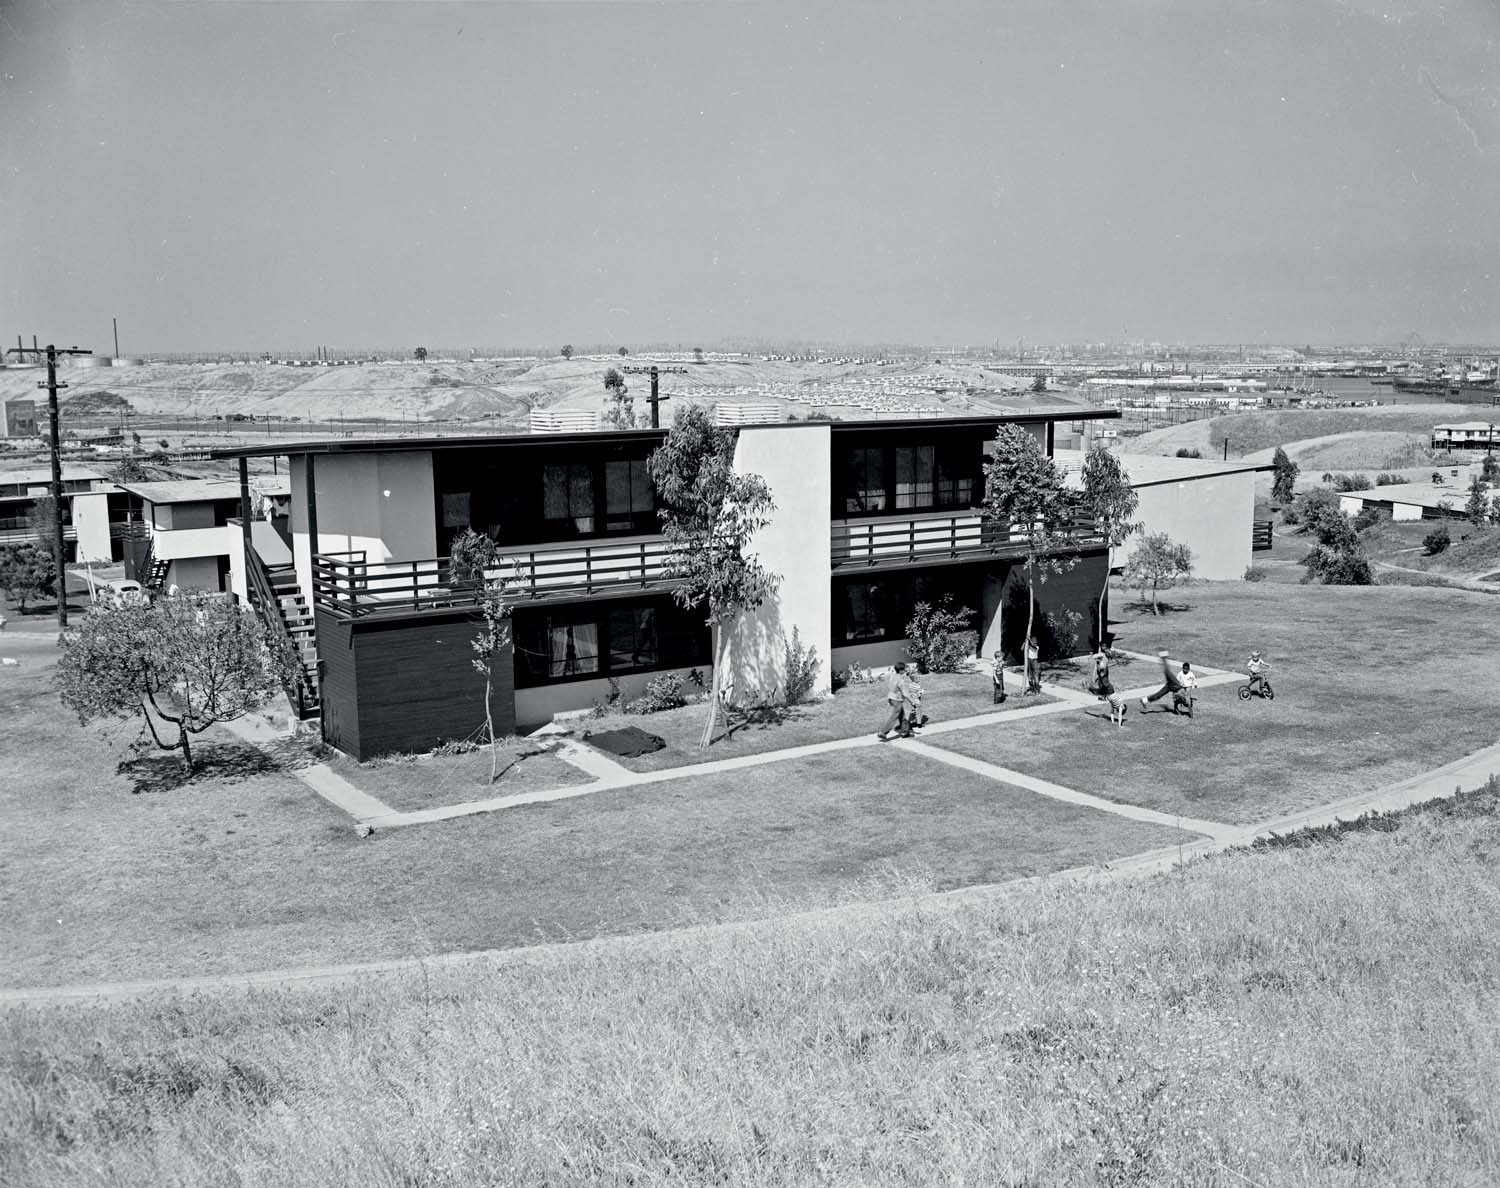 Channel Heights housing project, Richard Neutra, San Pedro, CA, USA, 1942. © J. Paul Getty Trust - Leonard Nadel photograph for the Housing Authority of the City of Los Angeles